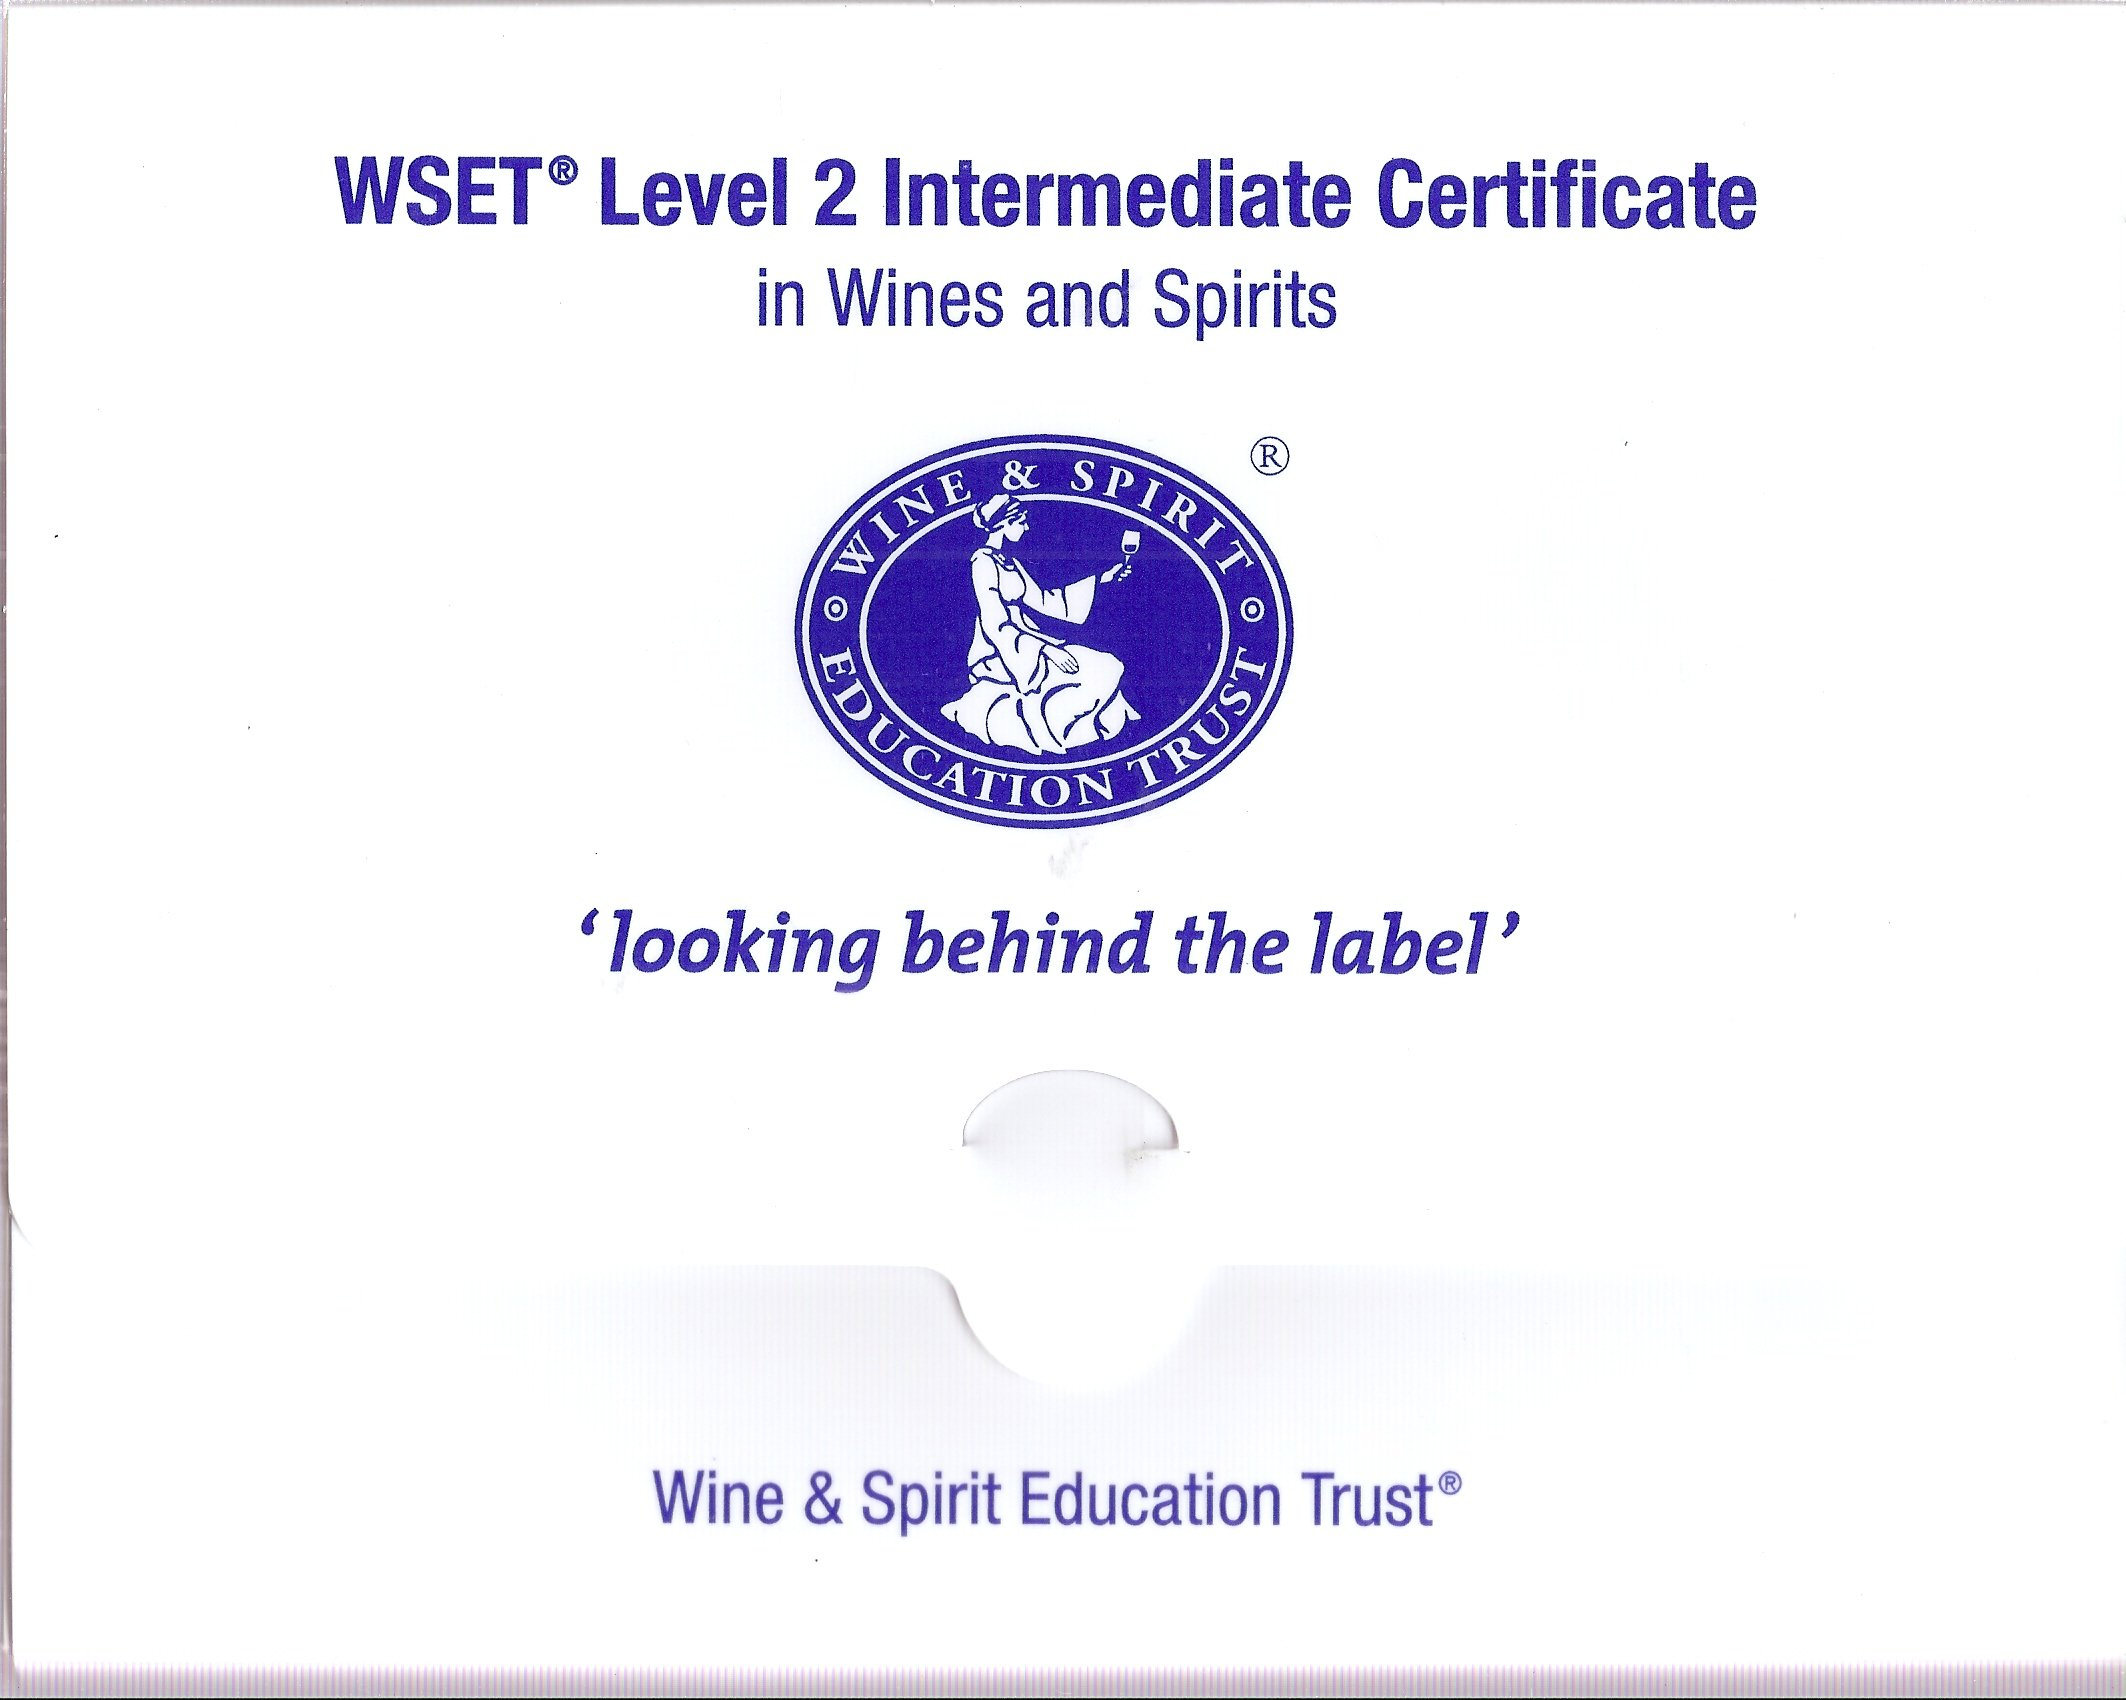 """WSET Level 2 Intermediate Certificate in Wines and Spirits """"Looking Behind  the Label"""" - Boxed Kit: Amazon.com: Books"""